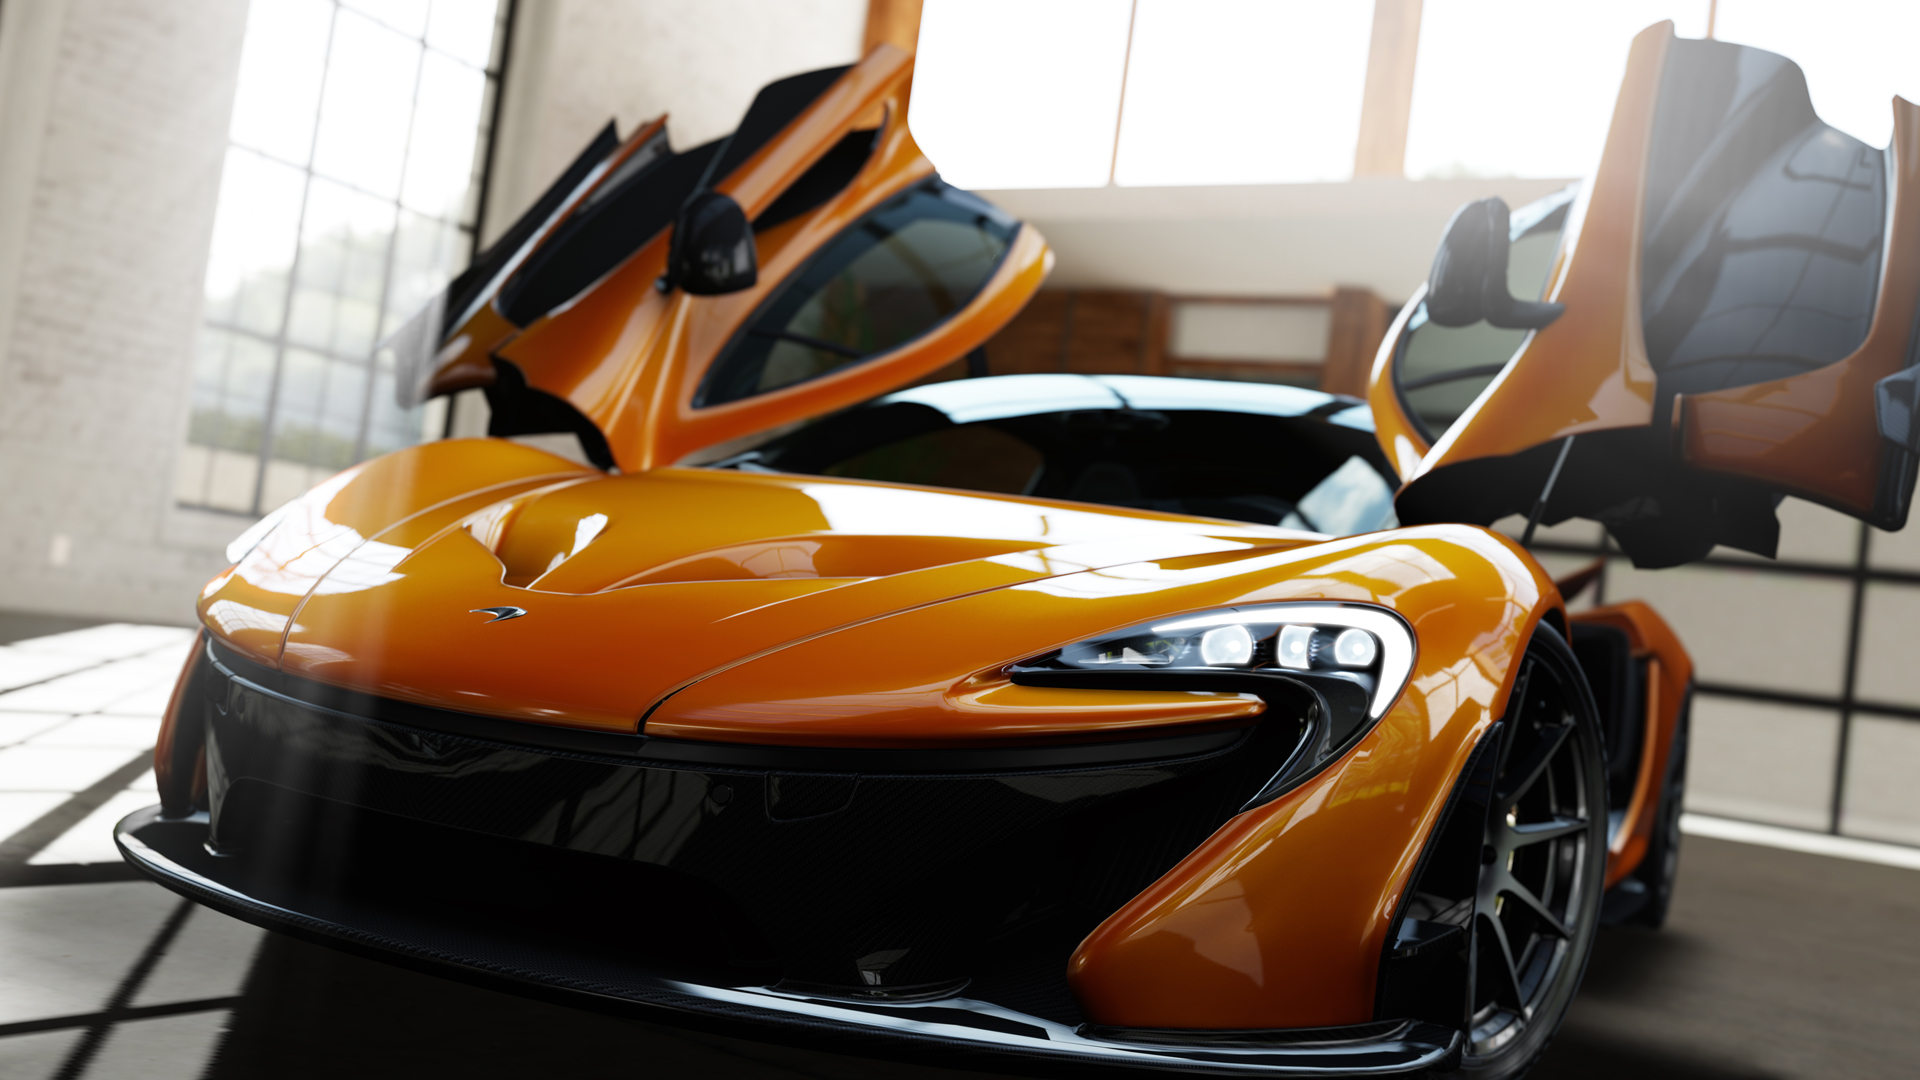 McLaren P1 in Forza Motorsport 5 Exclusive HD Wallpapers 5100 1920x1080